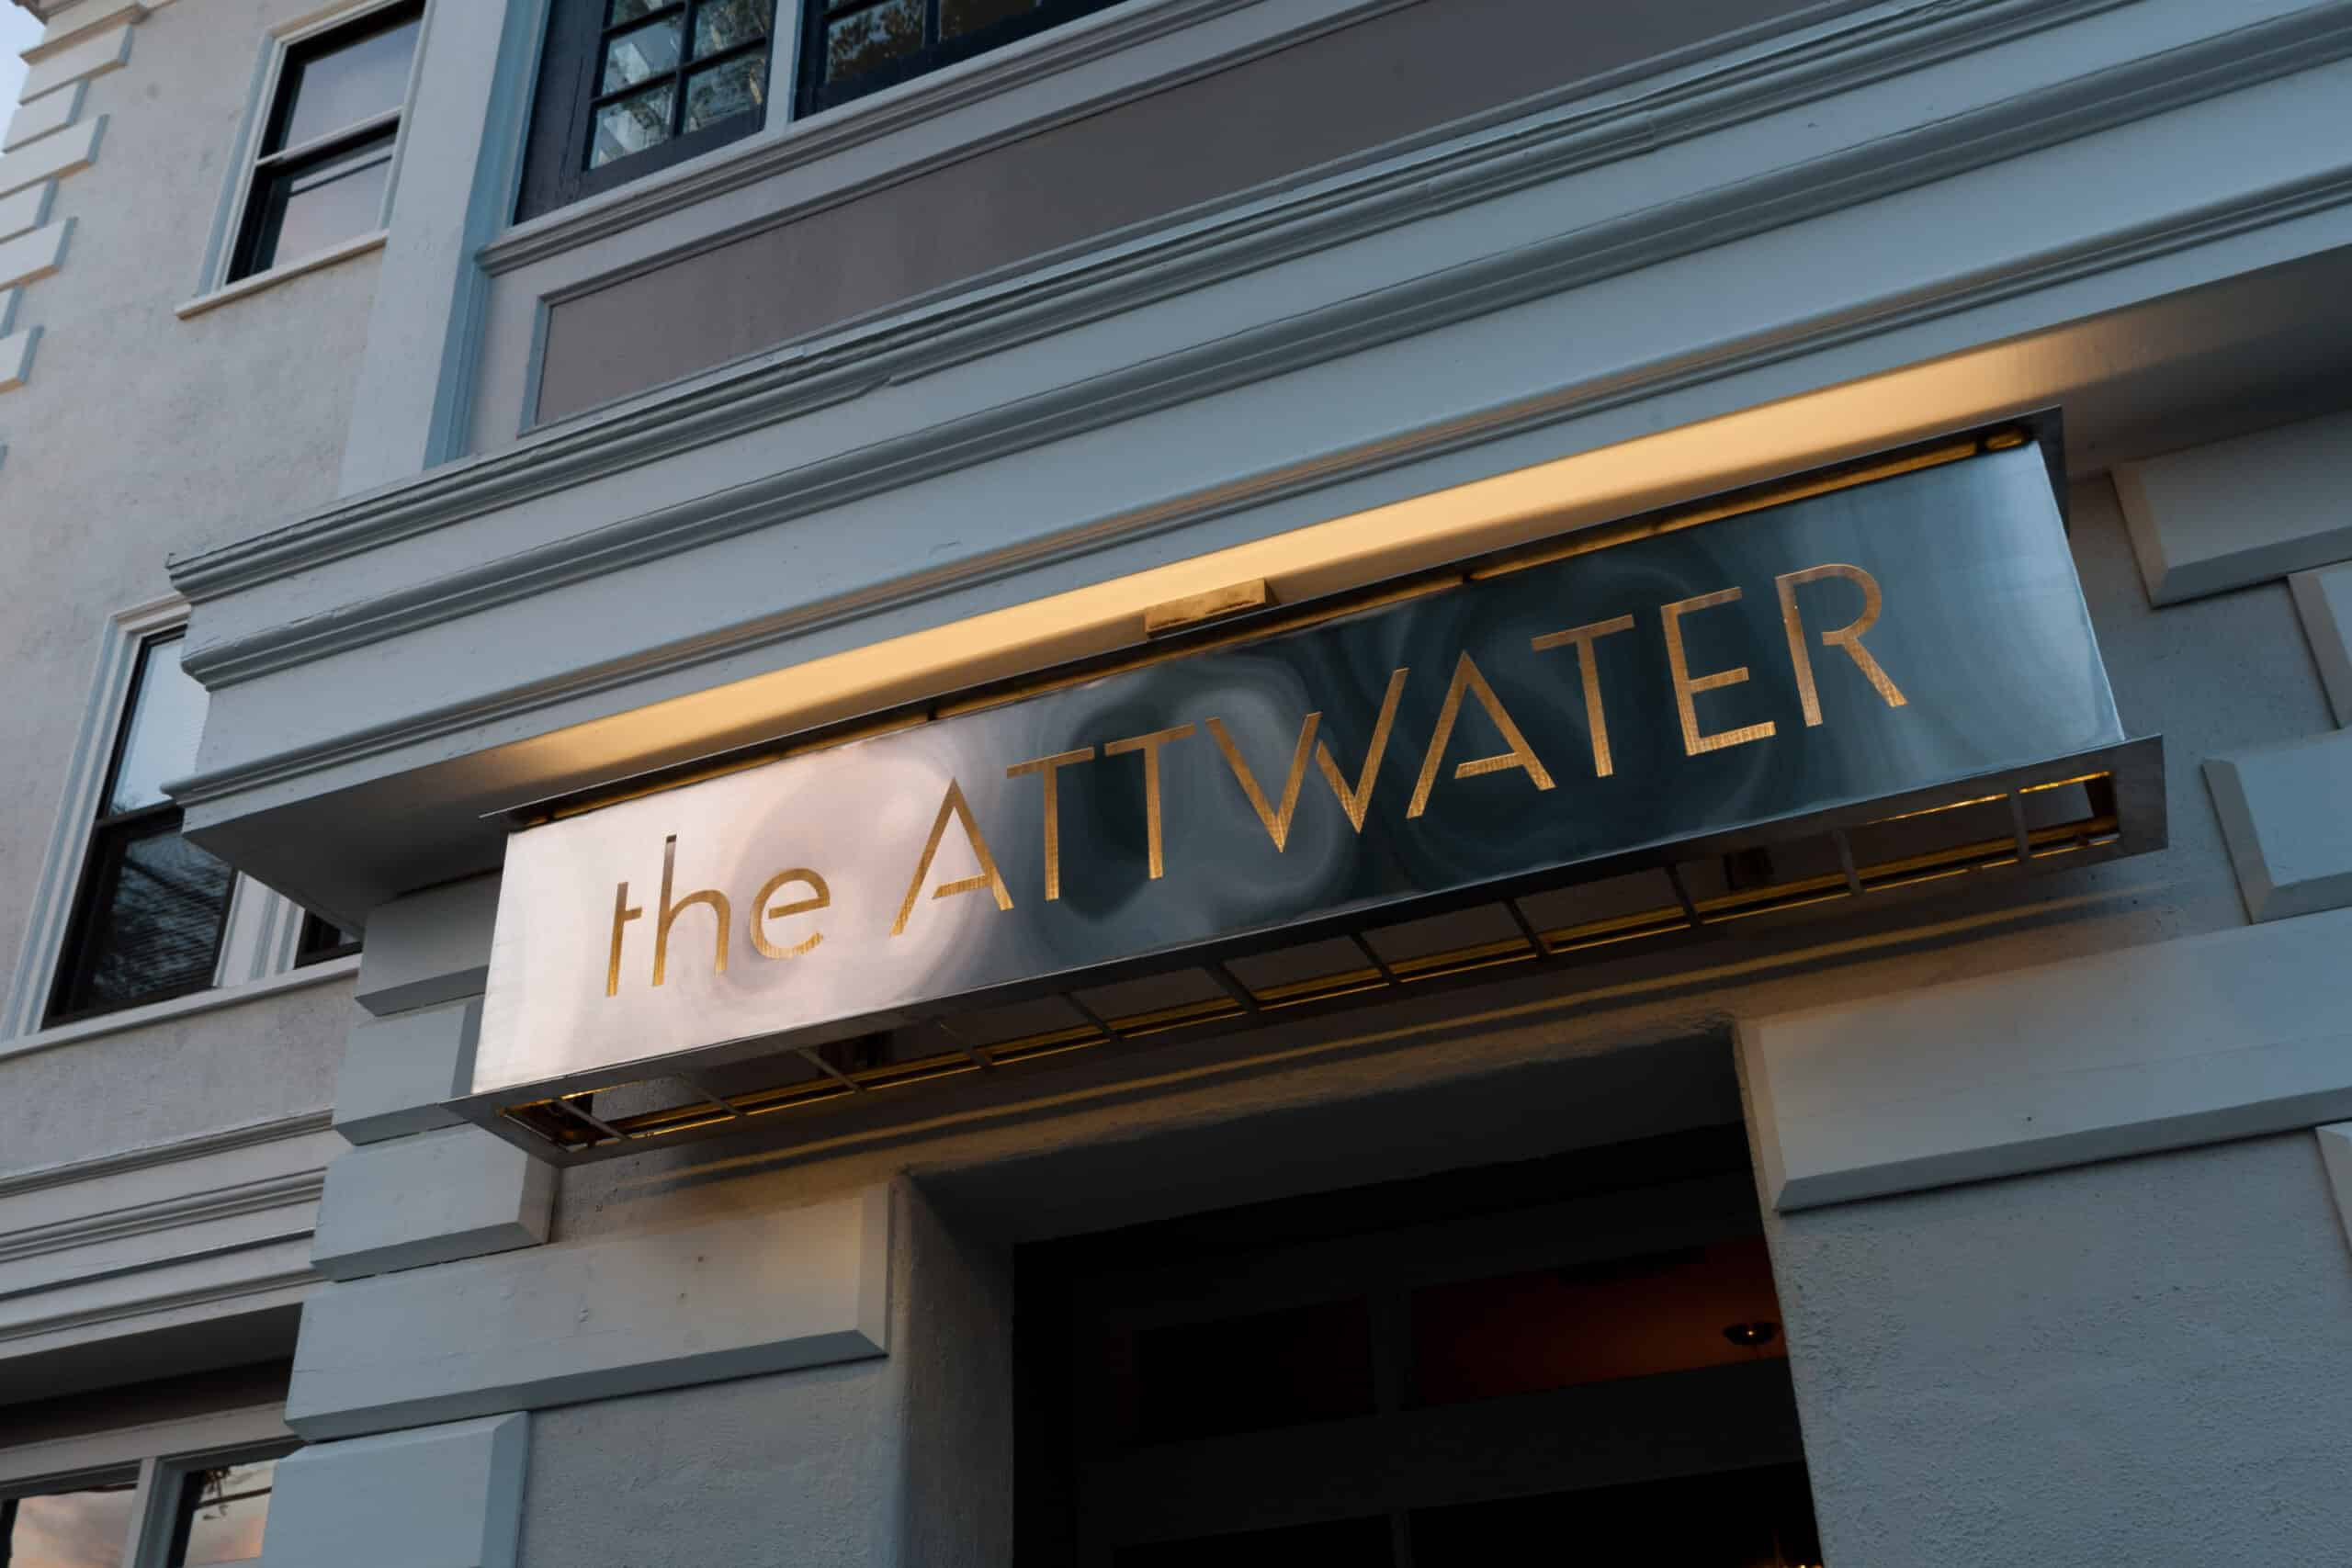 Close up of a luxury hotel that says The Attwater